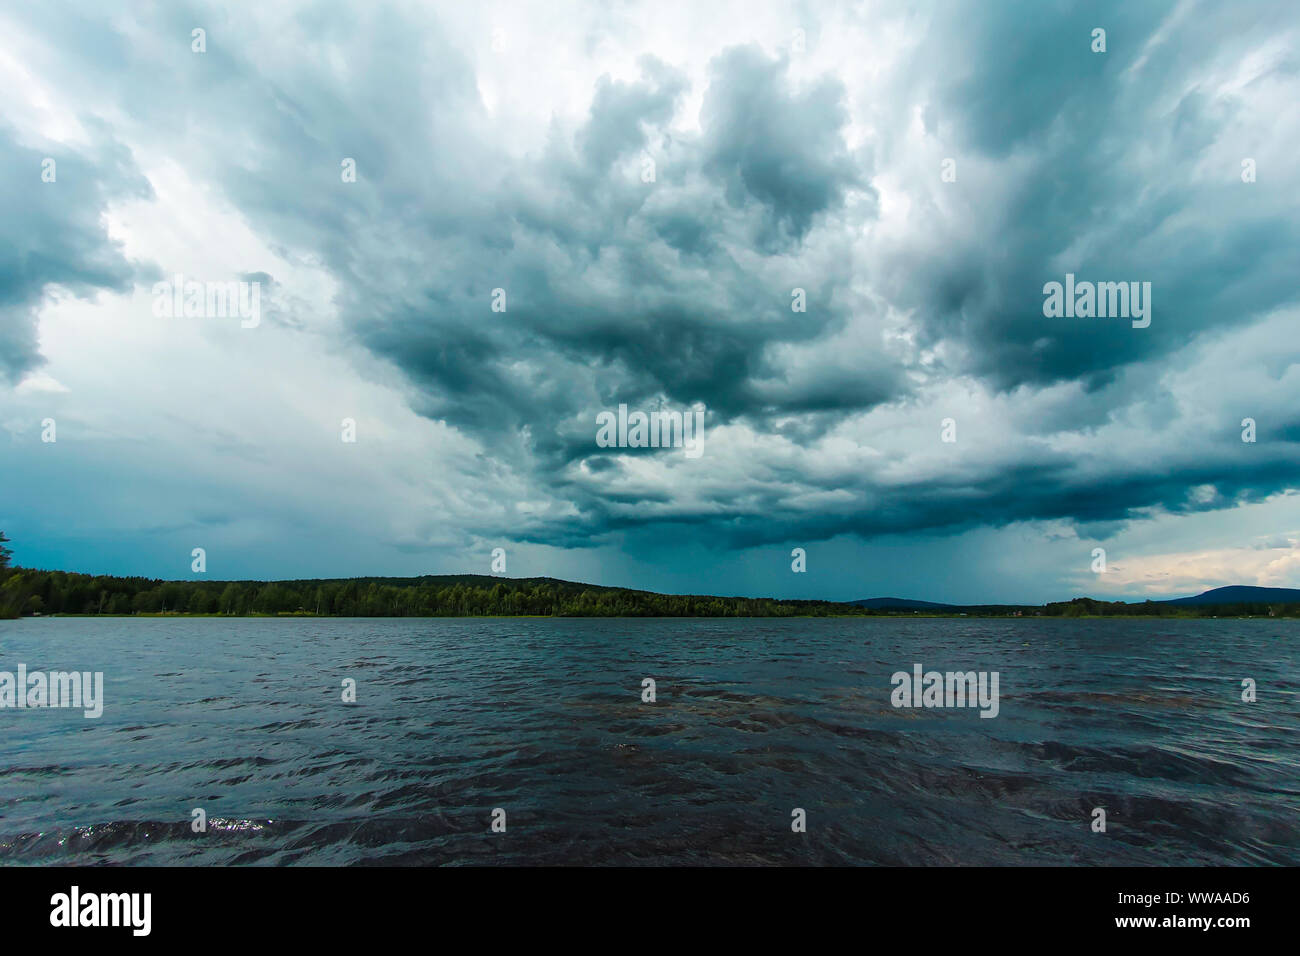 Dramatic sky over a lake close to Soderhamn and Hudiksvall in Sweden. Dark blue stormy clouds reflected in the dark water. Stock Photo